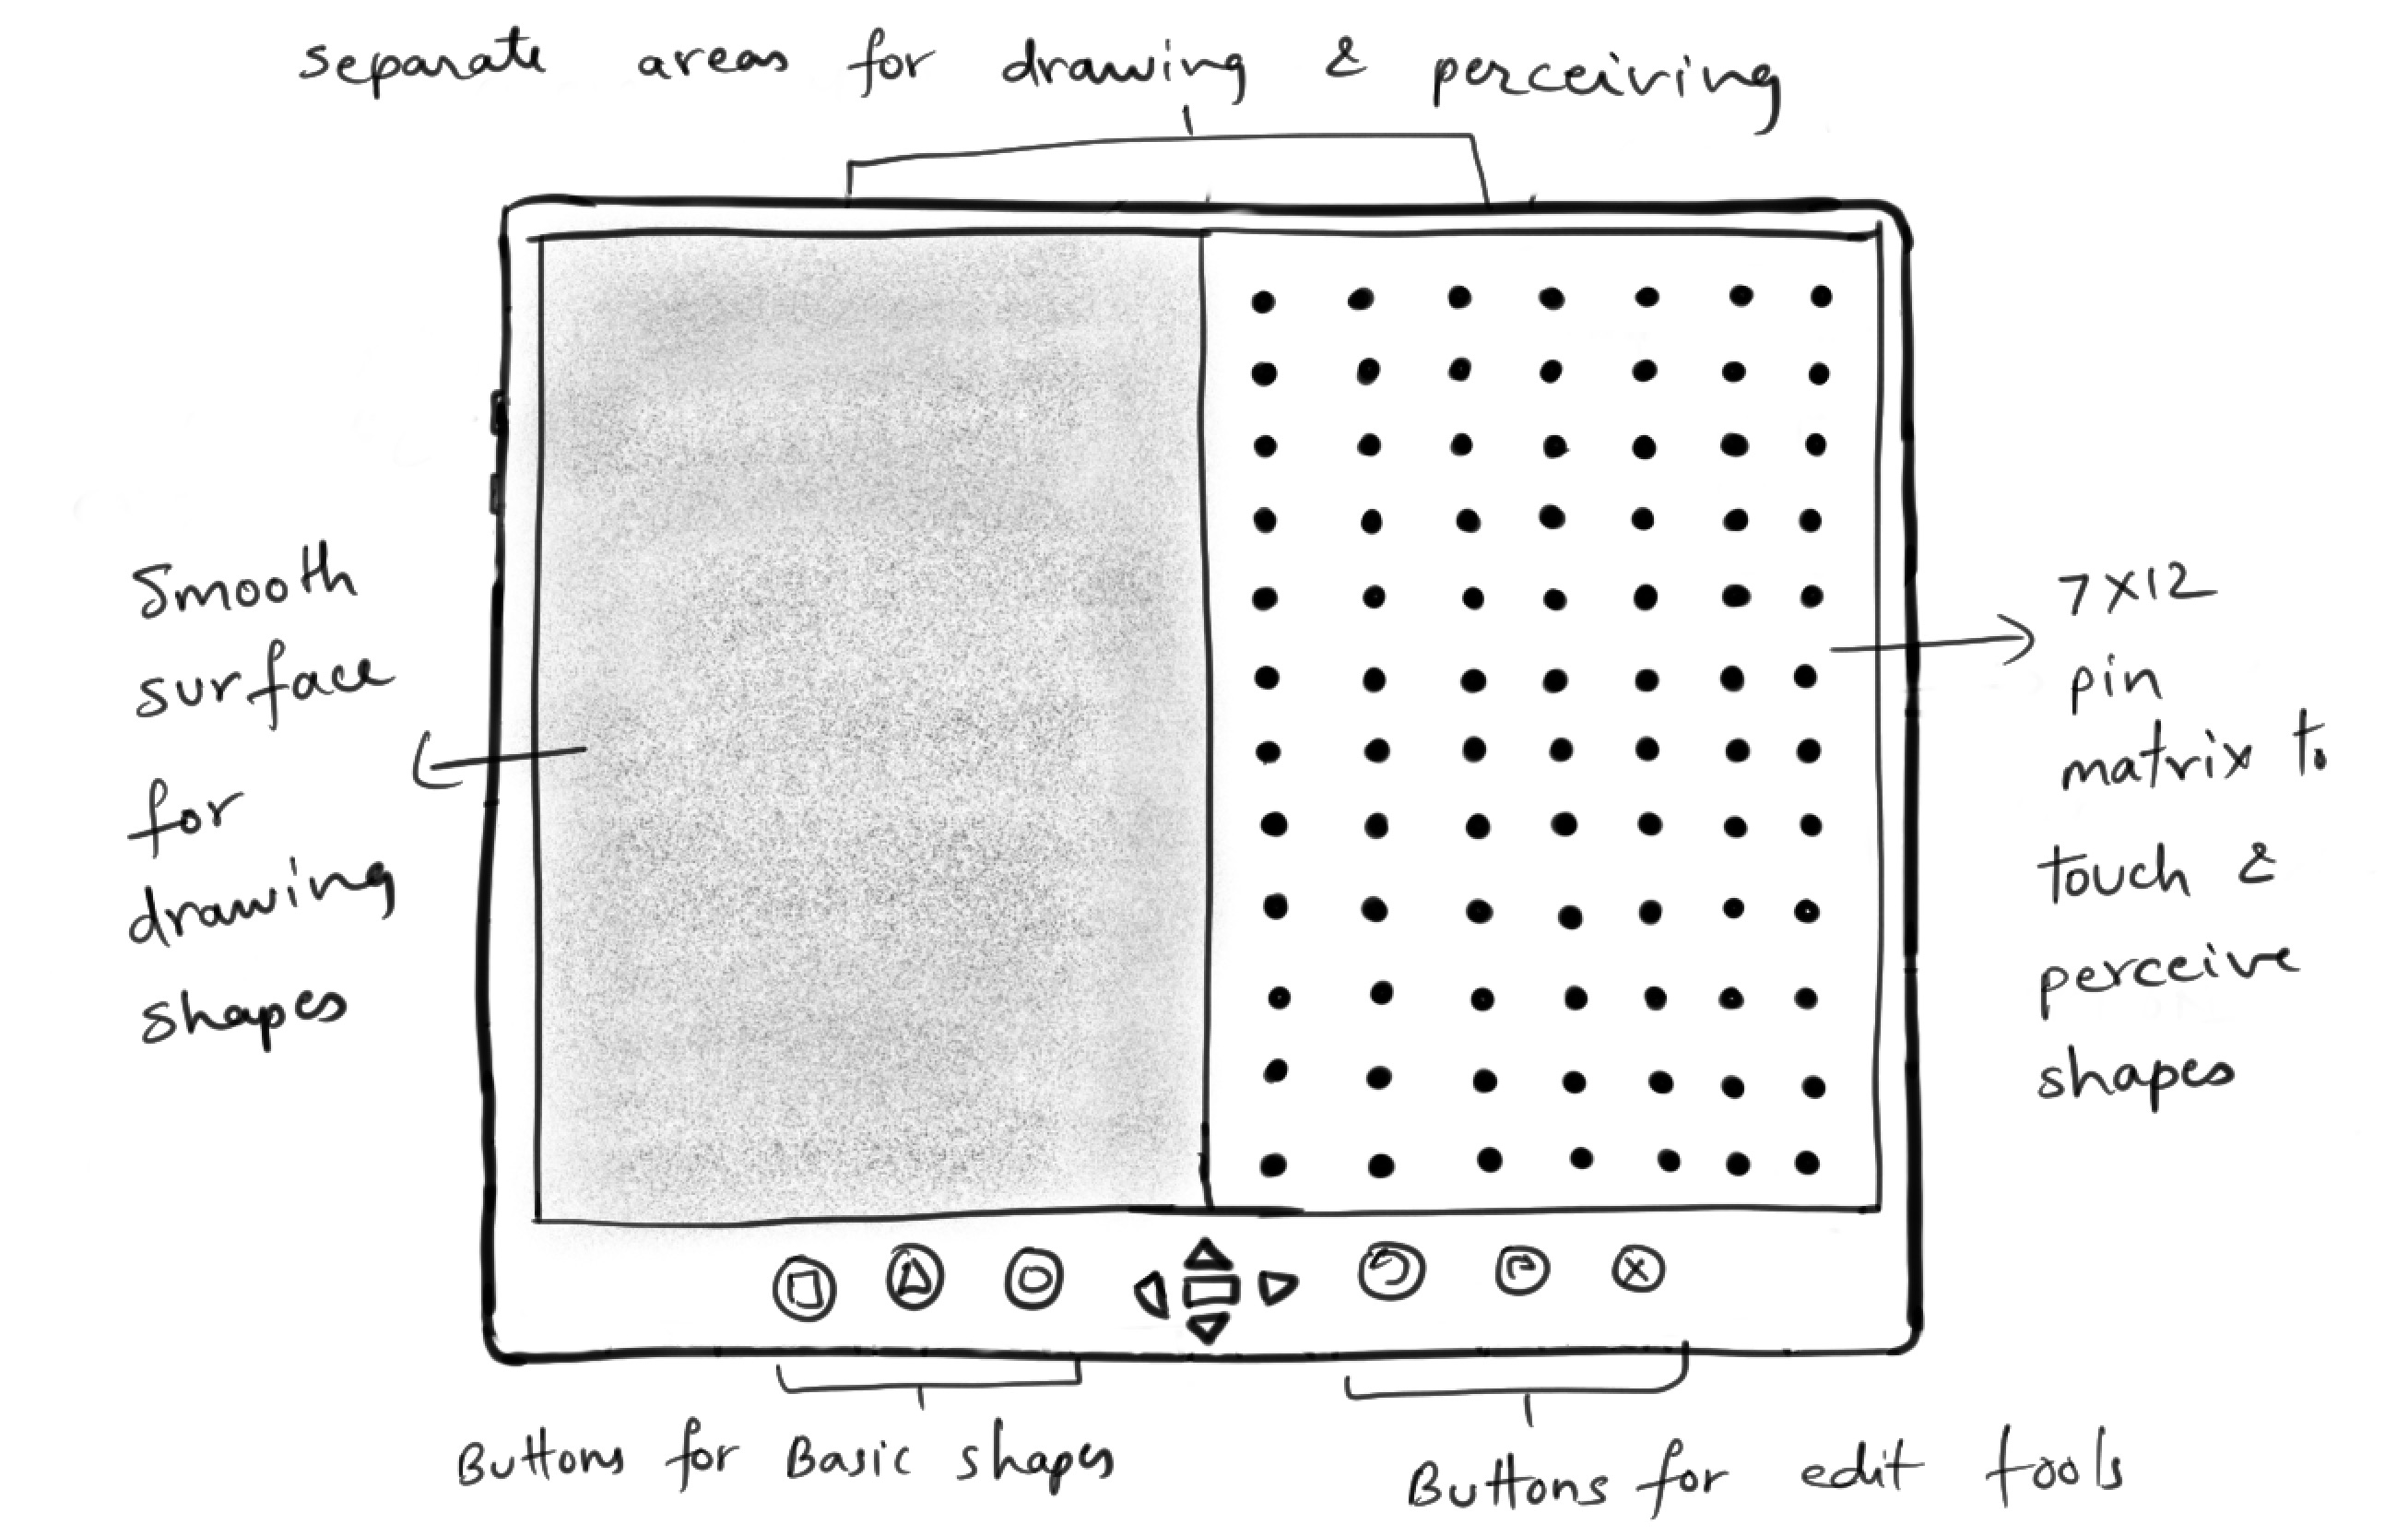 This image shows a concept with two panels. On the left panel users can draw diagrams on a smooth surface. On the right panel pin matrix enables users to perceive the diagram.